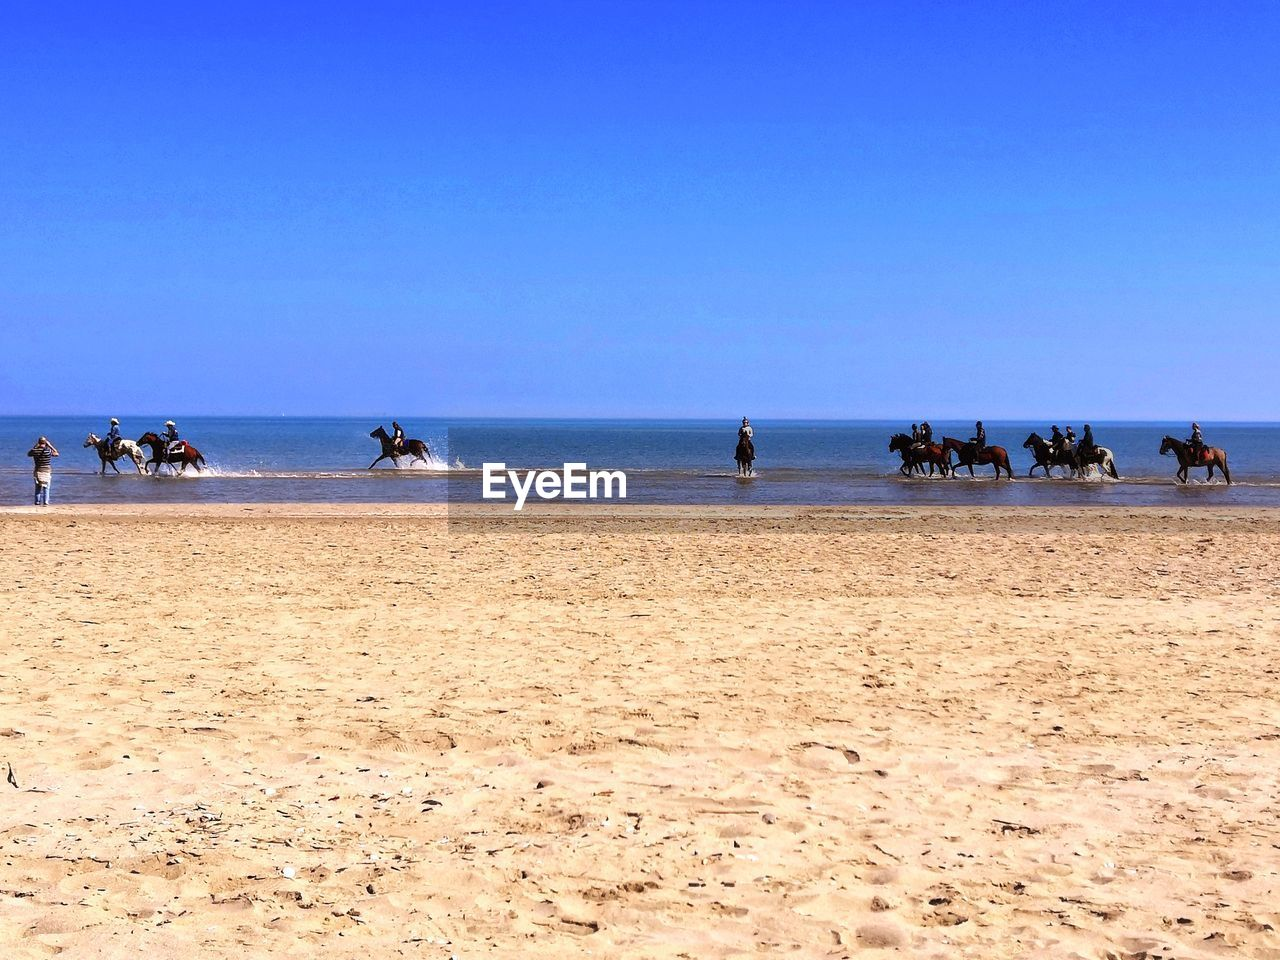 beach, land, sea, water, sky, group of people, horizon over water, sand, horizon, copy space, clear sky, scenics - nature, real people, day, beauty in nature, large group of people, men, blue, nature, outdoors